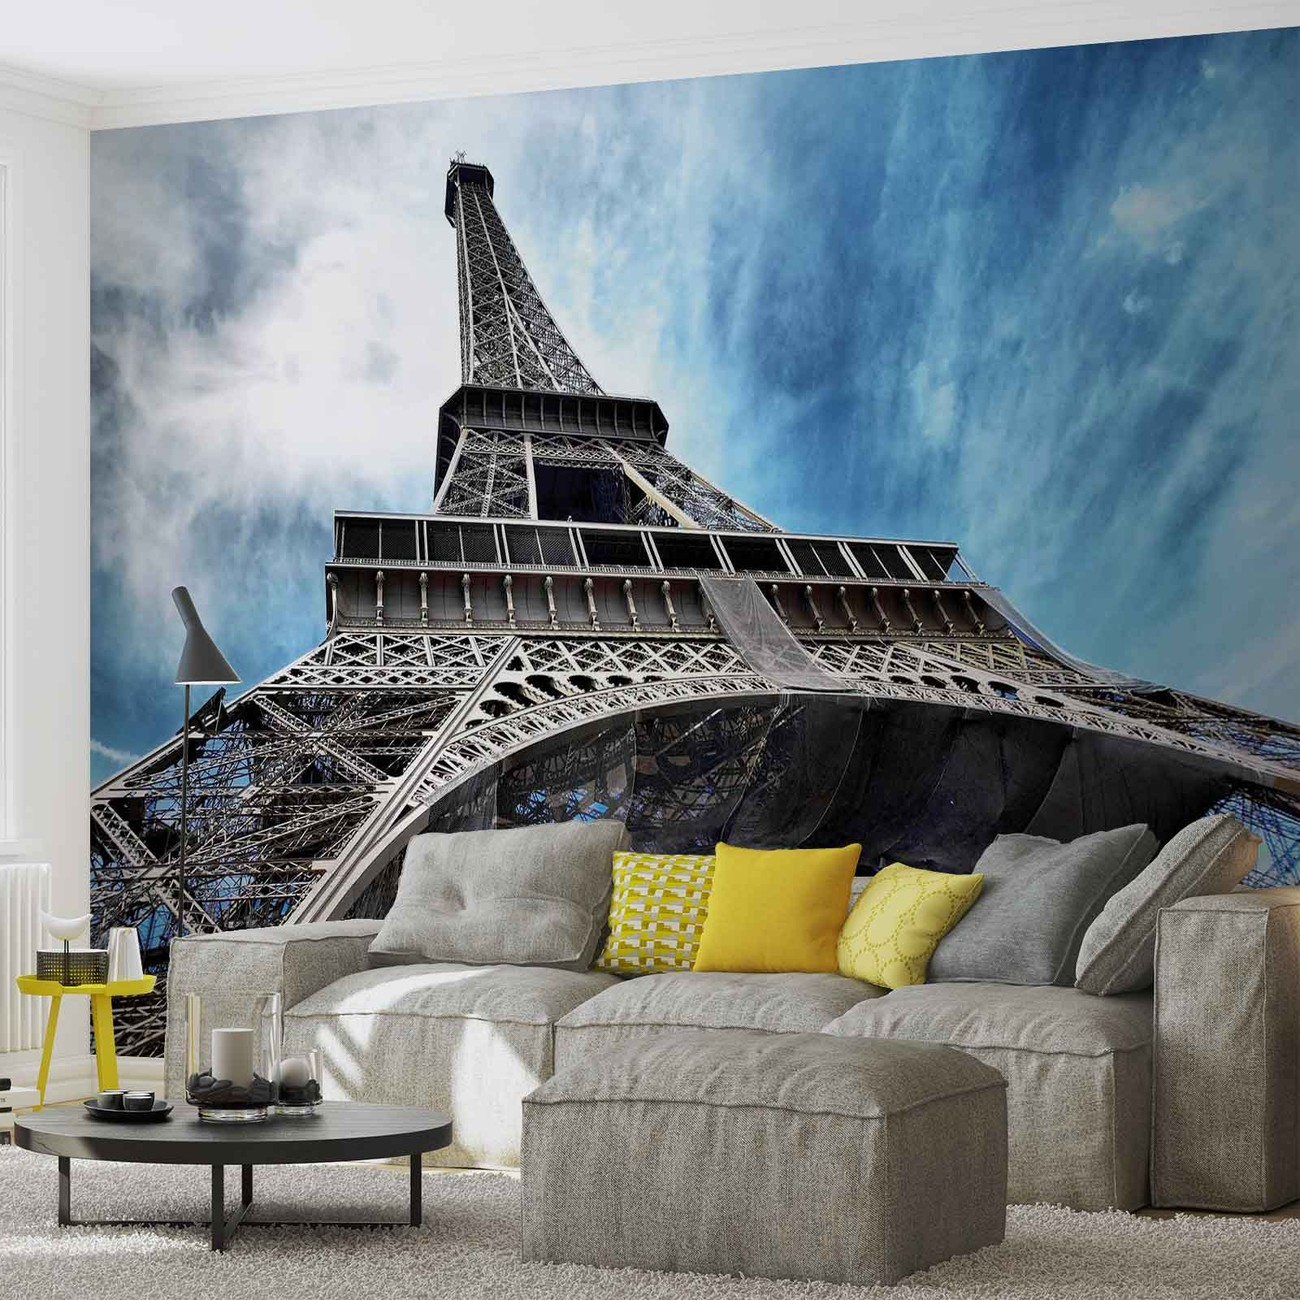 tour eiffel paris poster mural papier peint acheter le sur. Black Bedroom Furniture Sets. Home Design Ideas